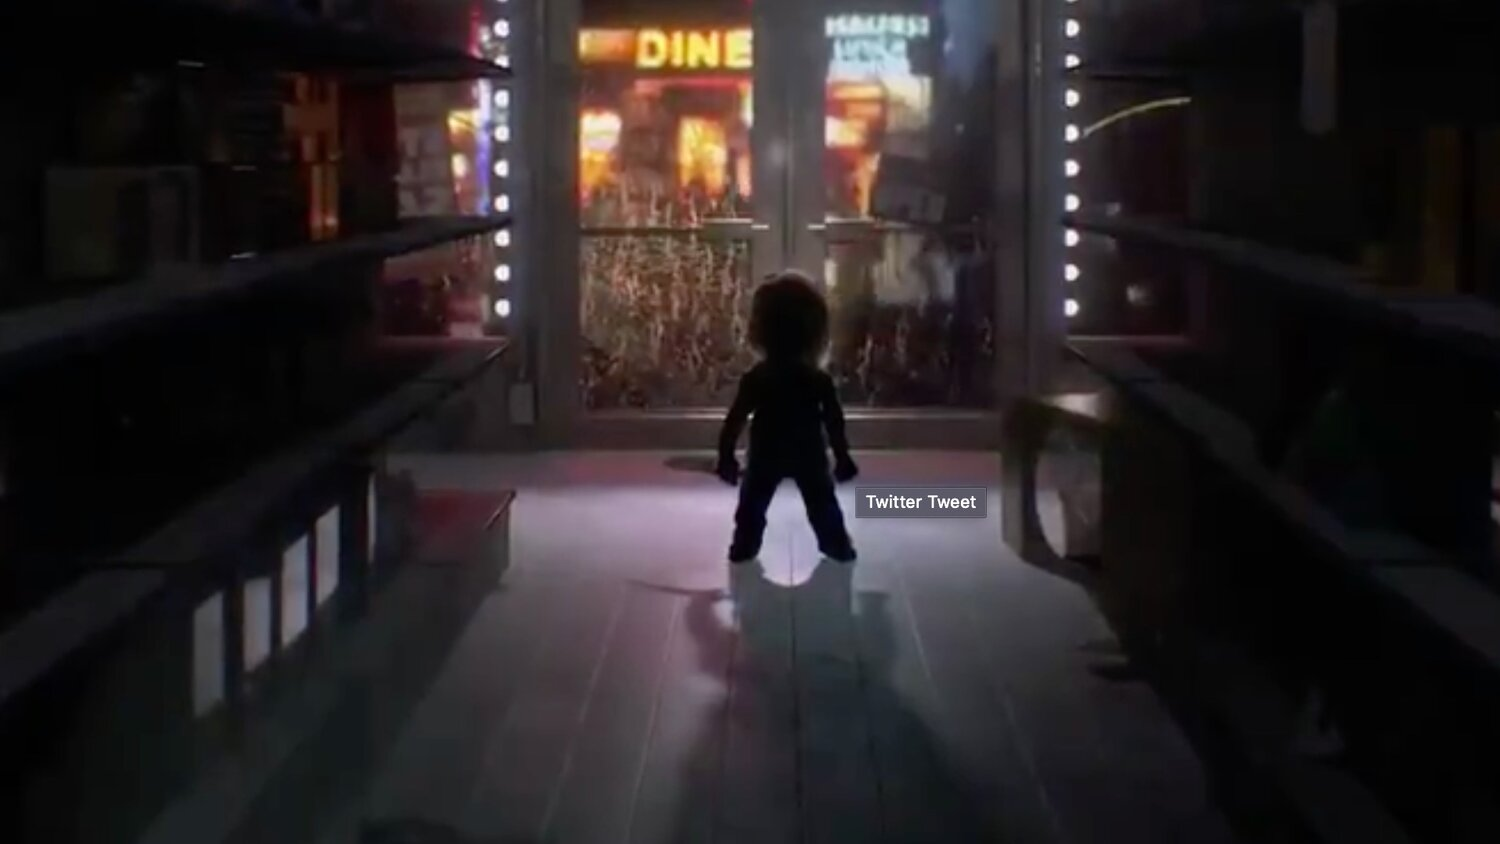 Promo Teaser For SyFy's Upcoming CHILD'S PLAY Series, CHUCKY